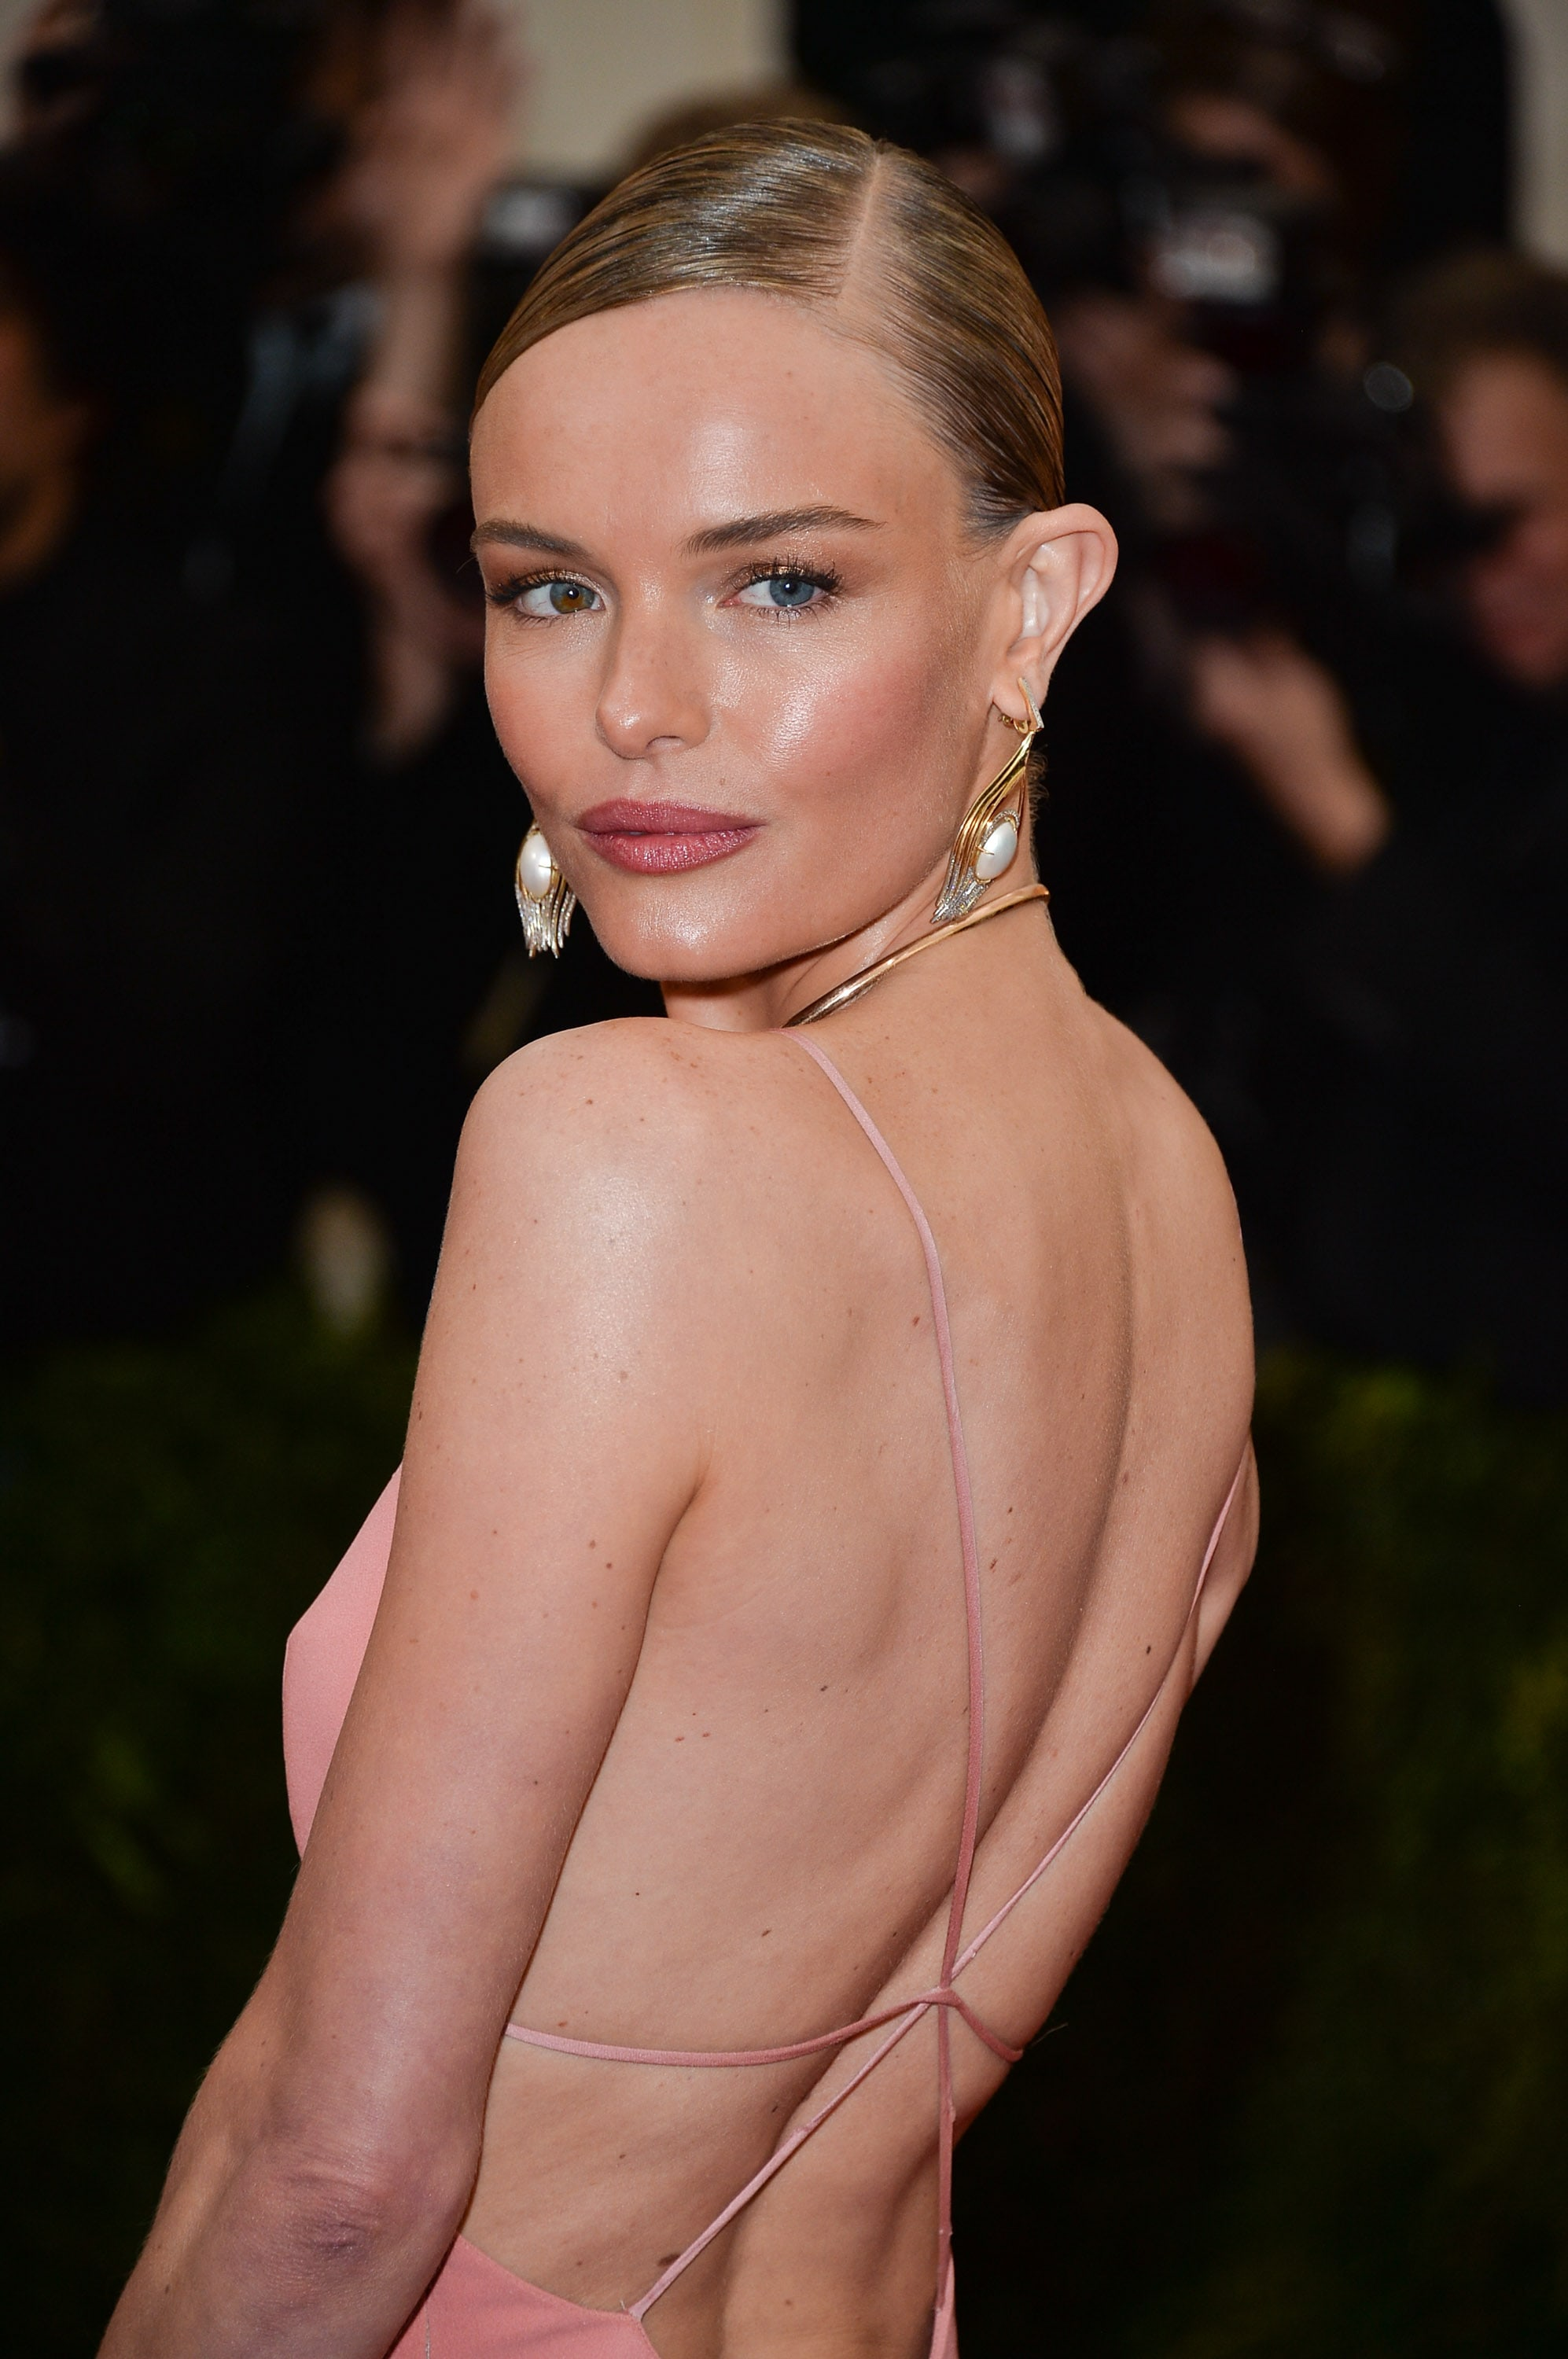 Kate Bosworth For mobile